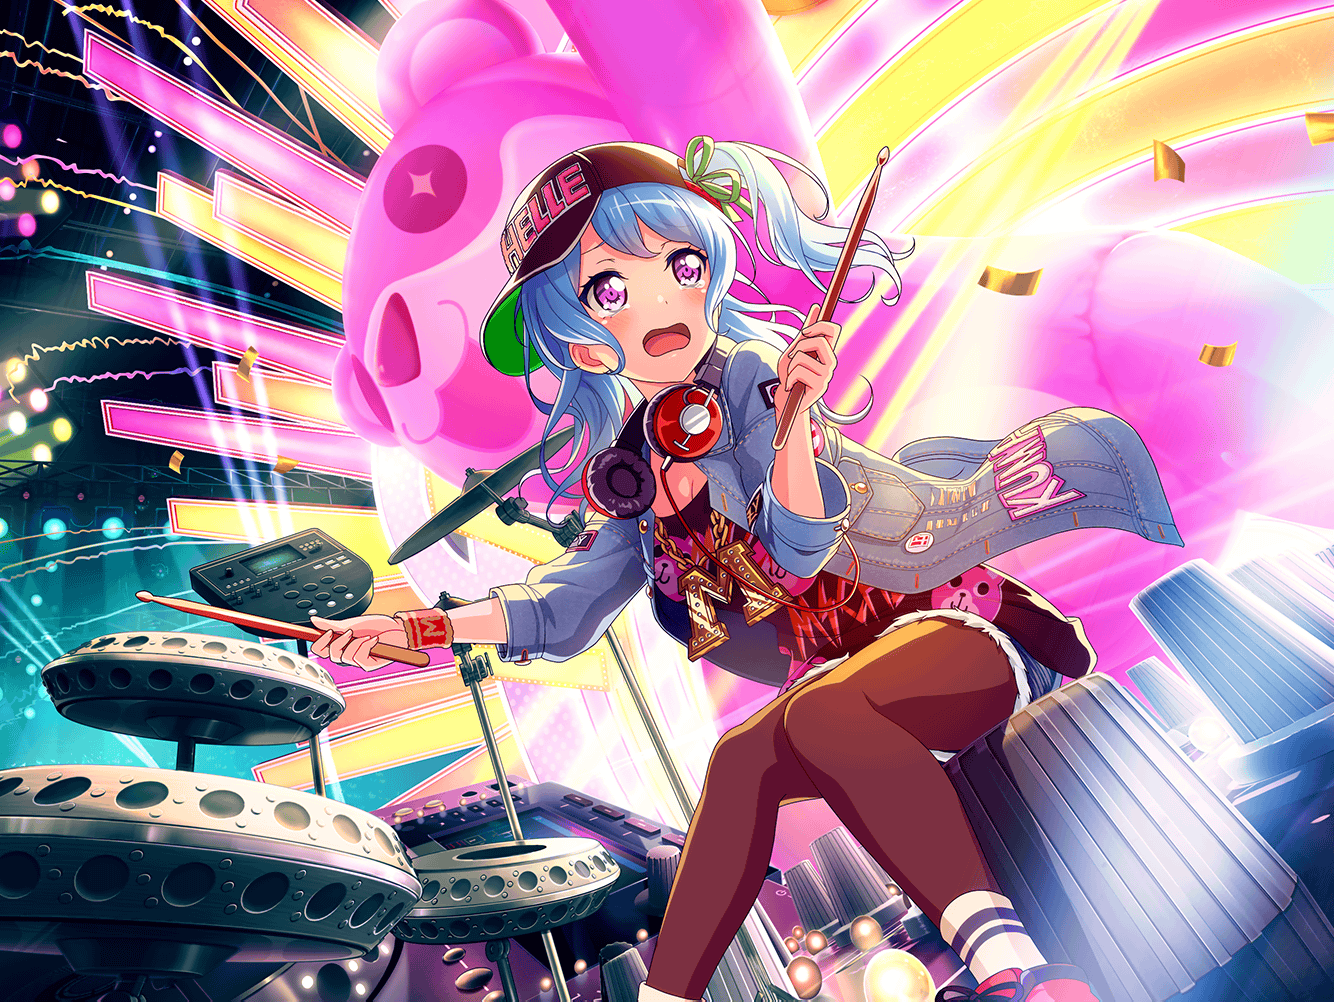 Kanon (Trained) Anime musica, Anime, Thing 1